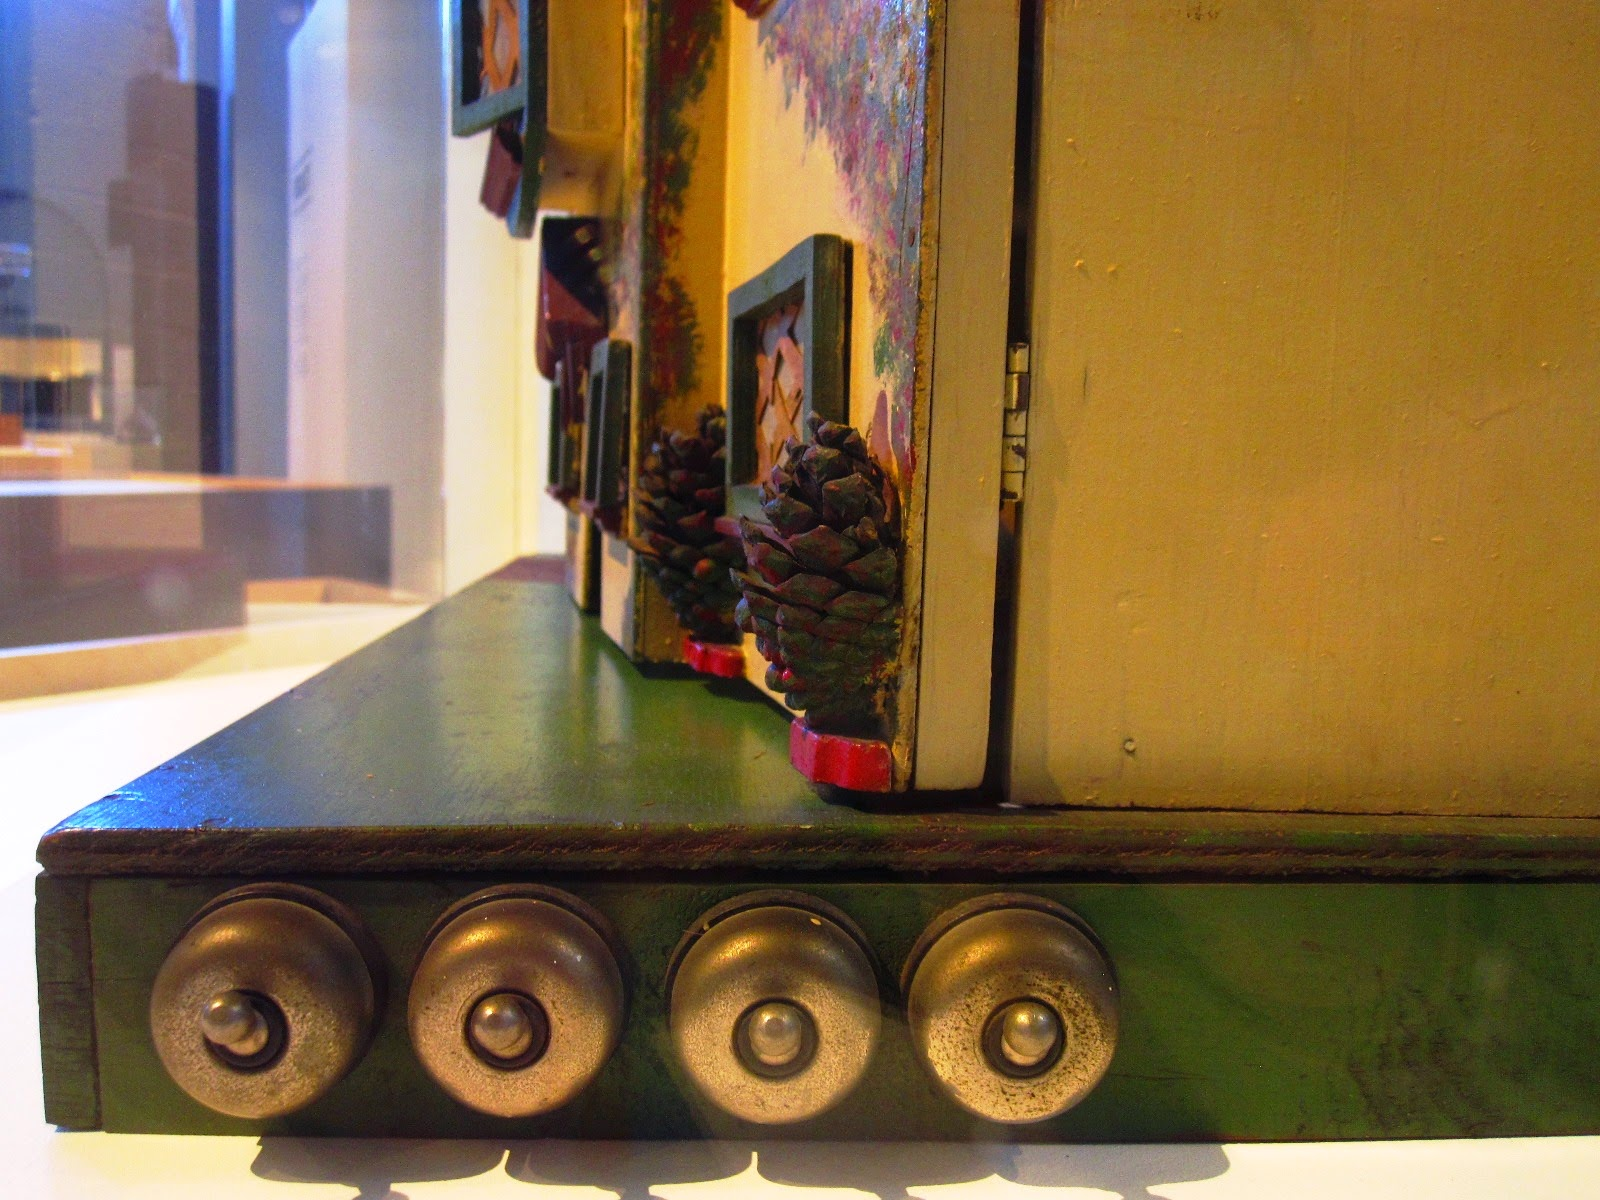 Side view of a vintage doll's house, showing a row of four light switches mounted on the base.